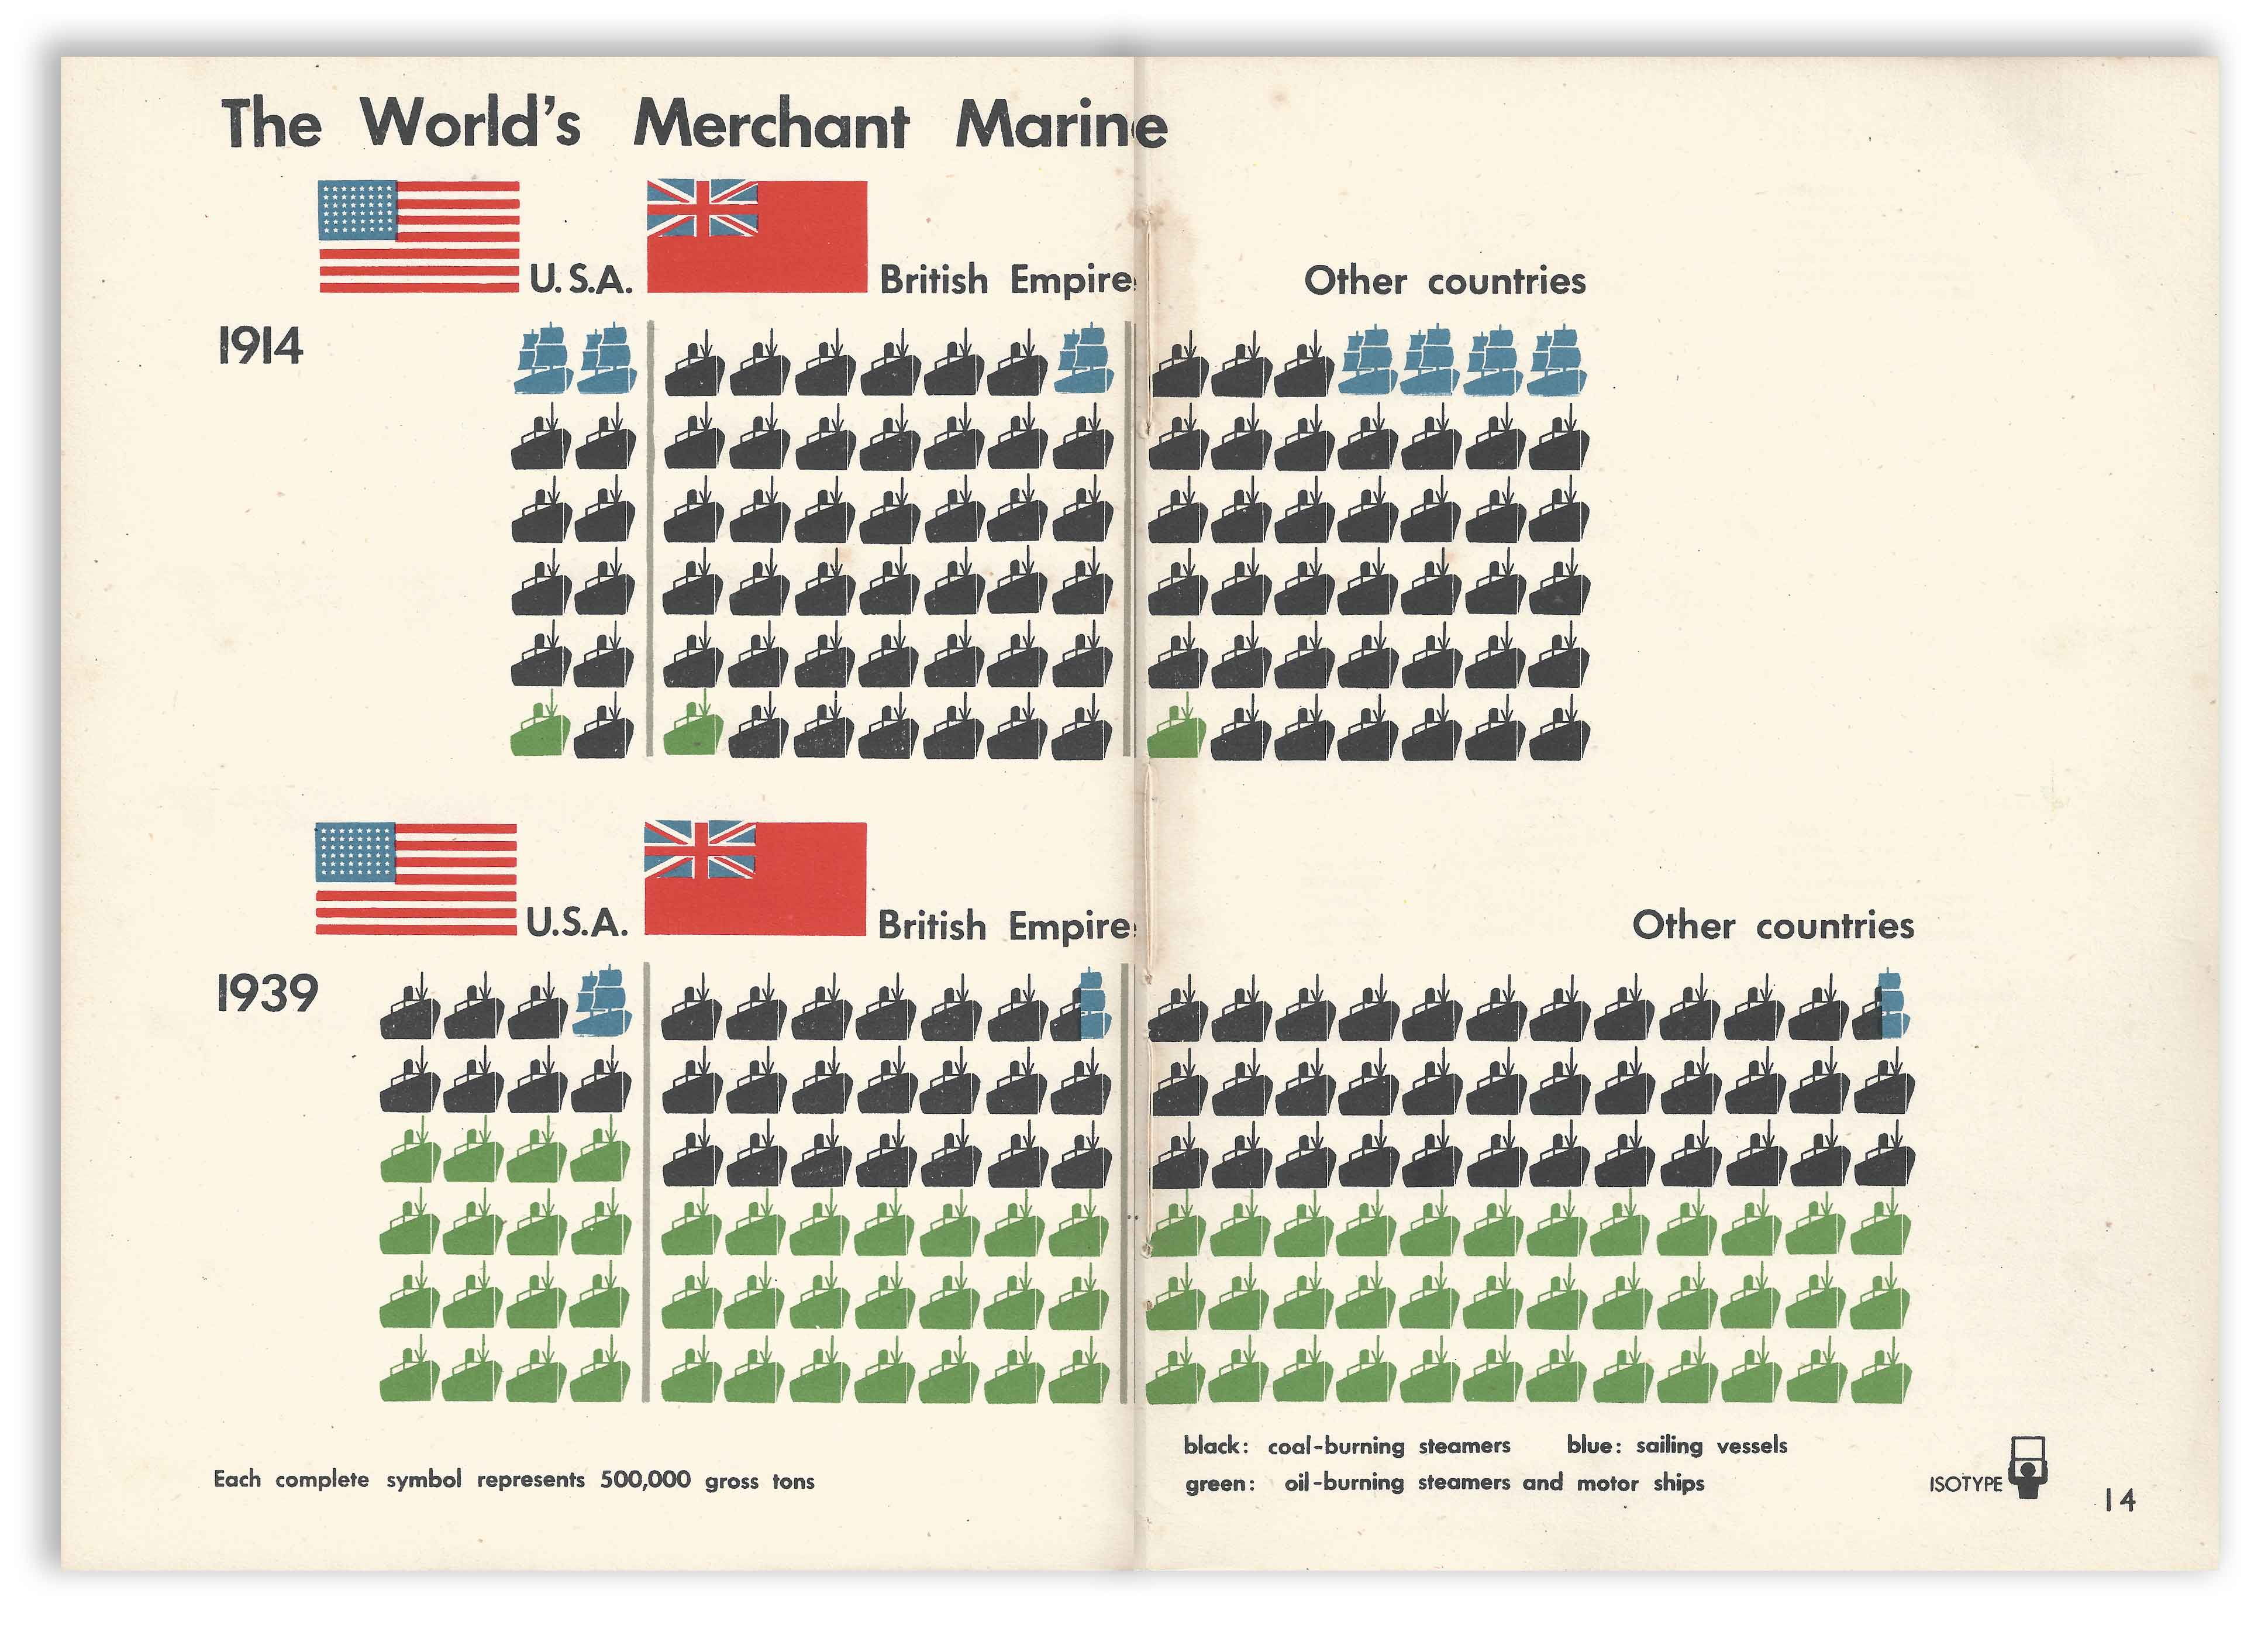 Isotype - Only An Ocean Between - The World's Merchant Marine